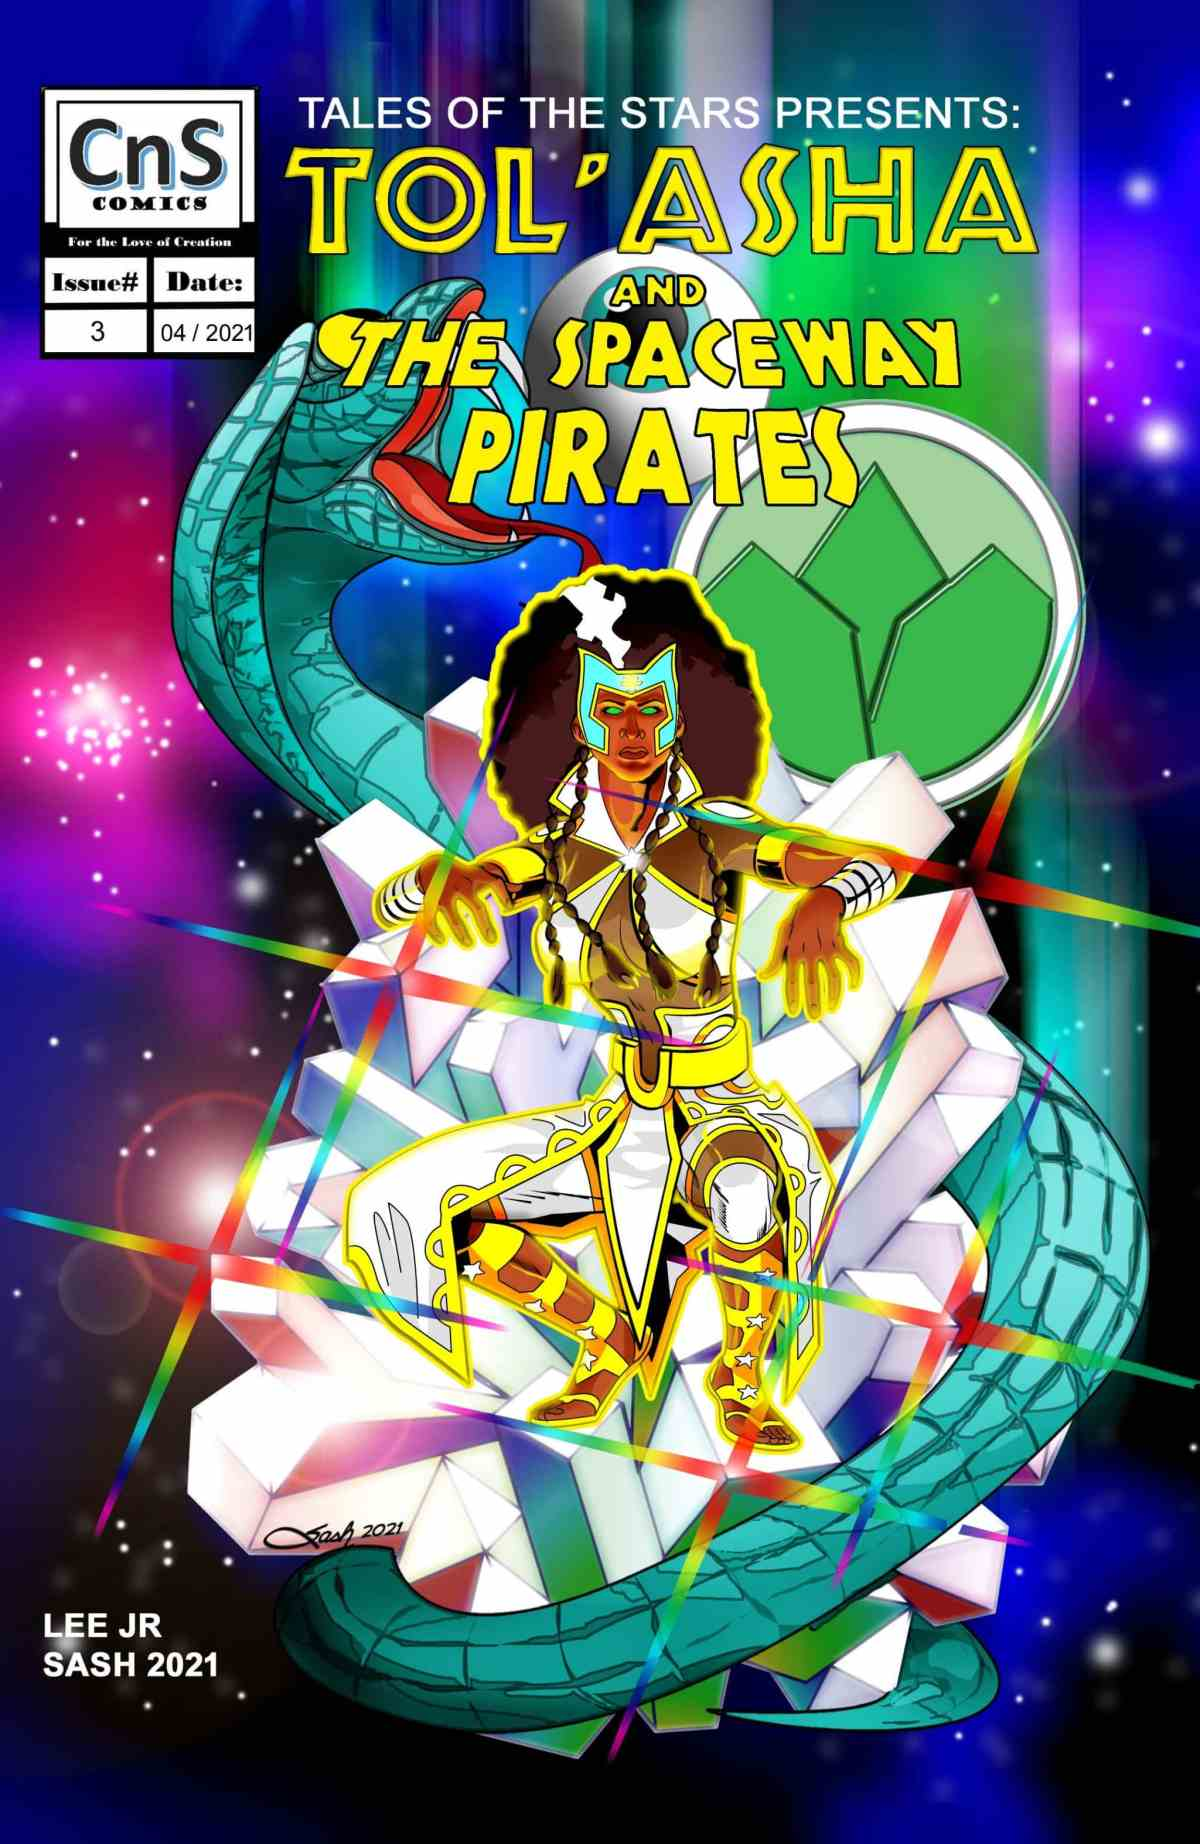 TOS Issue #3 Classic Cover. Art by Steven Sash Scott. Issue #3 will be released with our Kickstarter on April 23rd 2021.